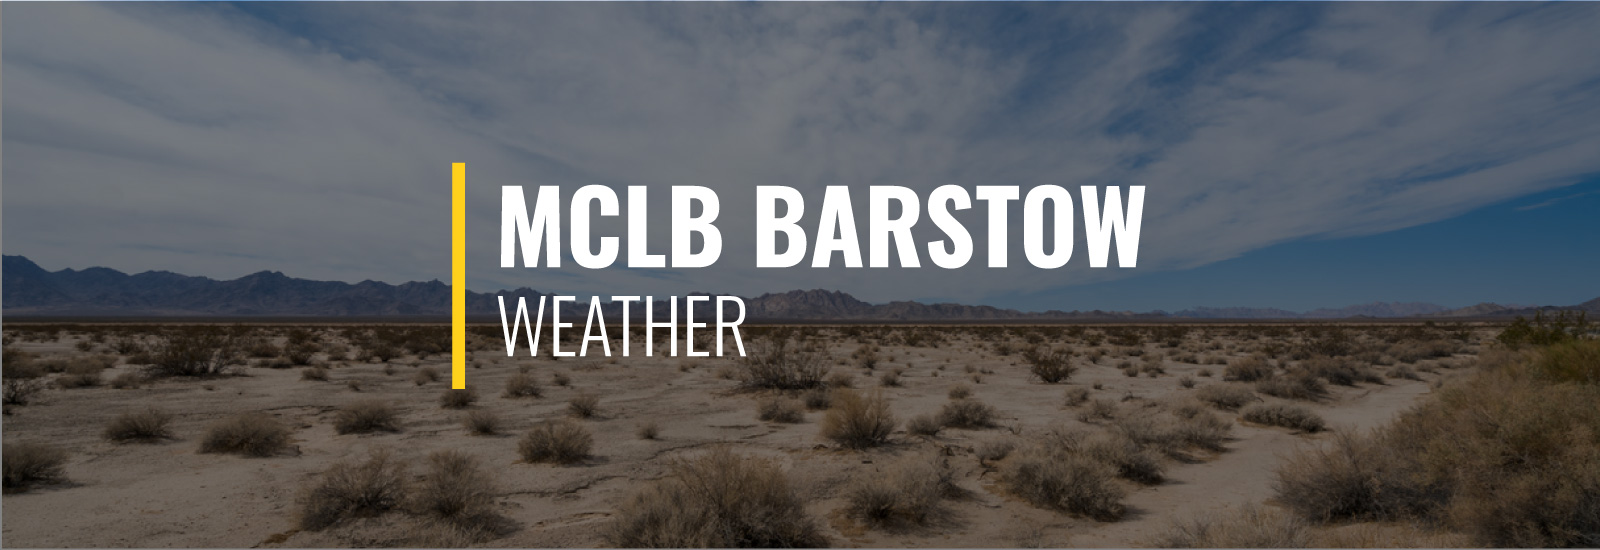 MCLB Barstow Weather